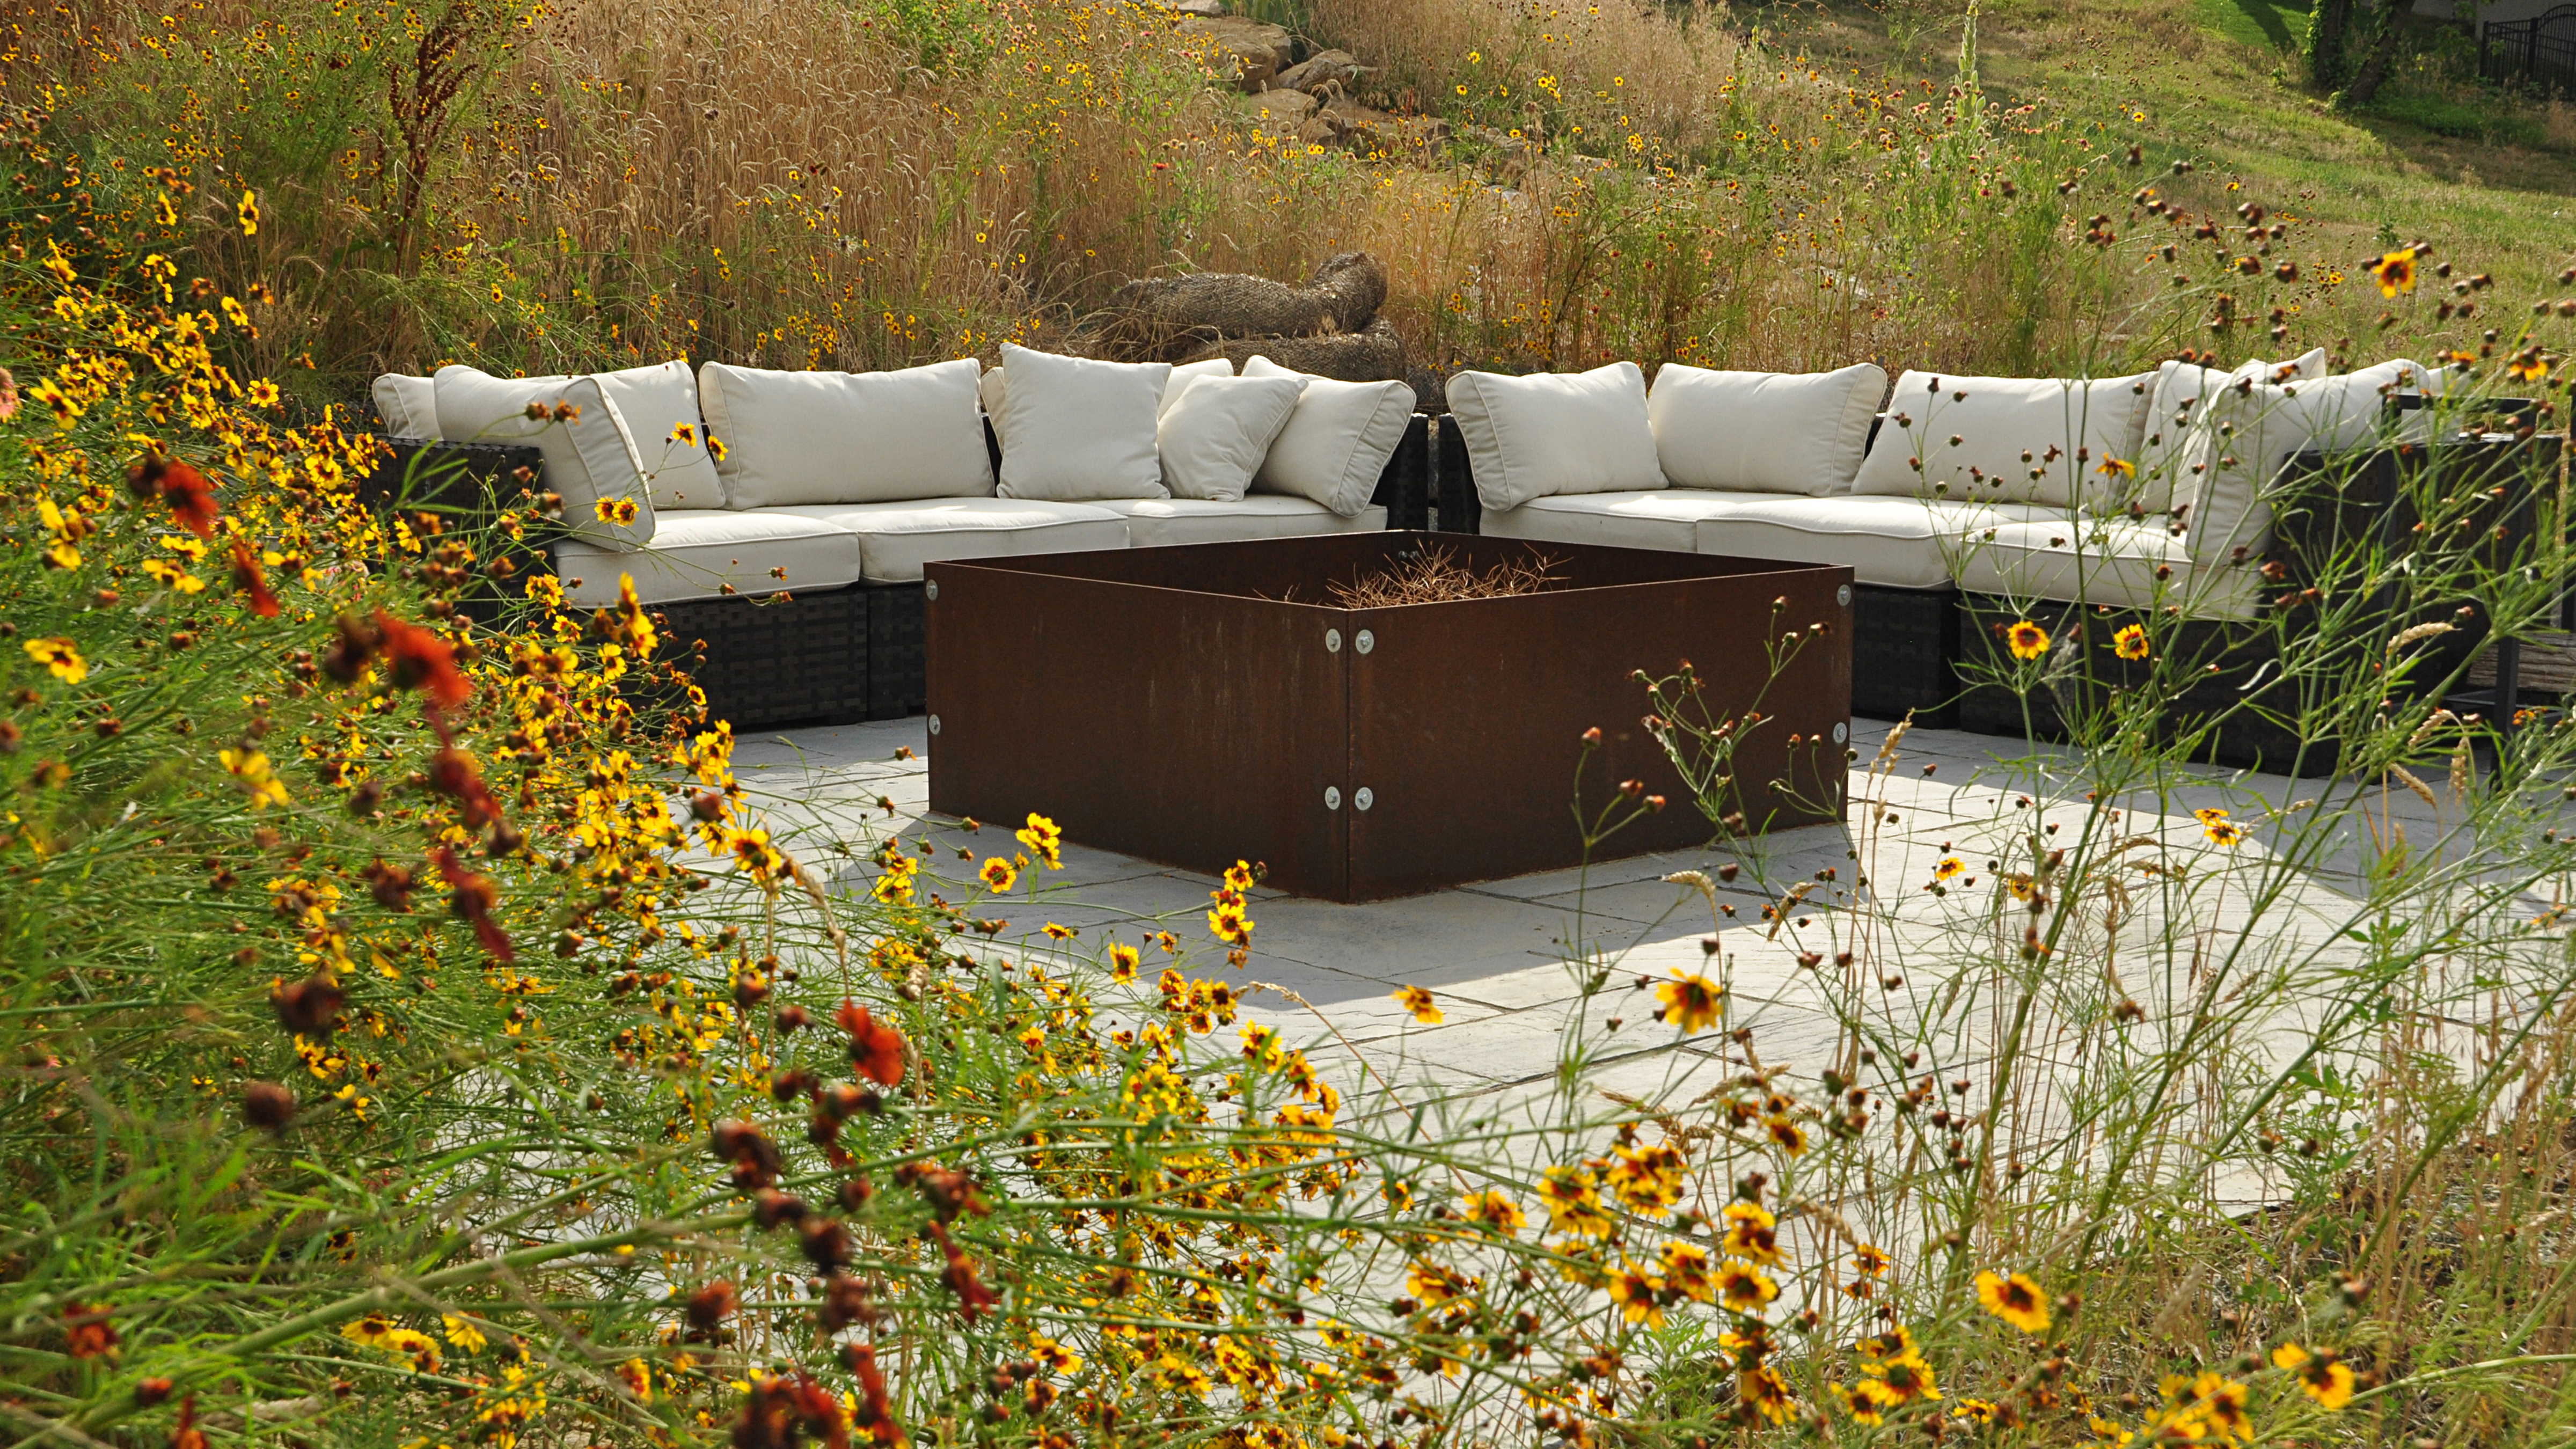 The finished hillside retreat is a relaxing oasis in the midst of native beauty. The rusty corten steel fire pit, although contemporary in design, is in perfect harmony with its surroundings.